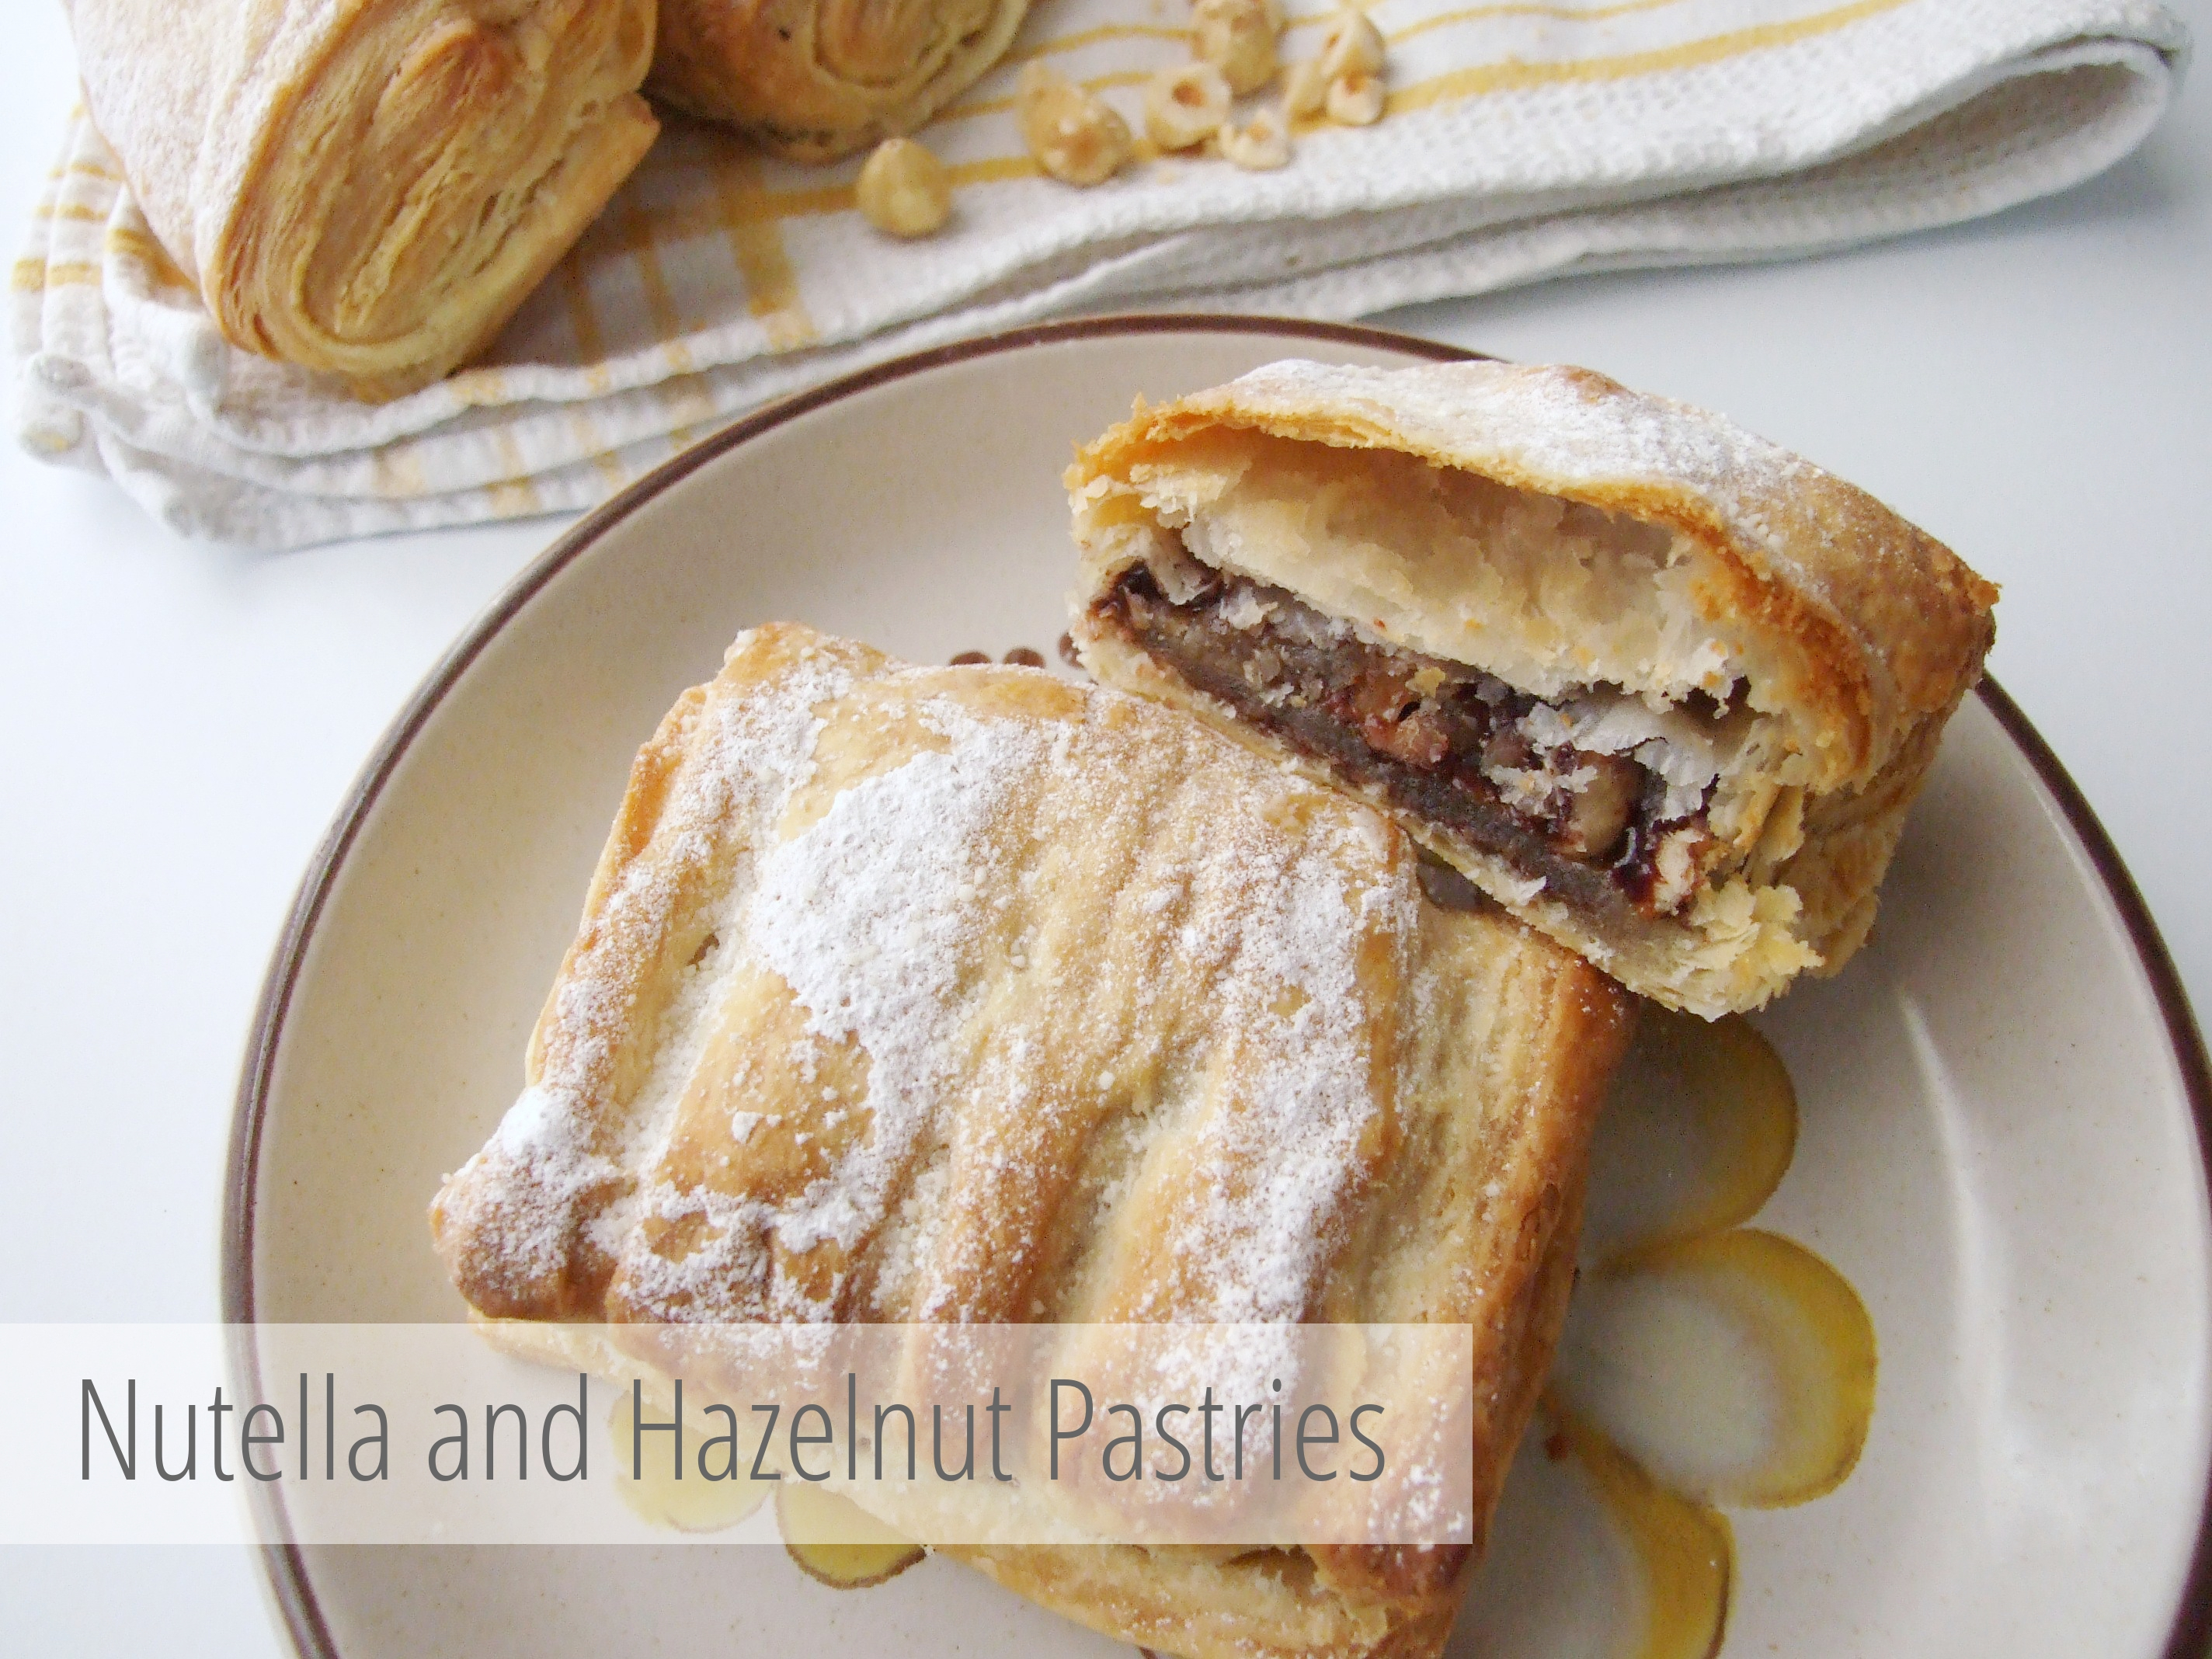 Nutella and Hazelnut Pastries.